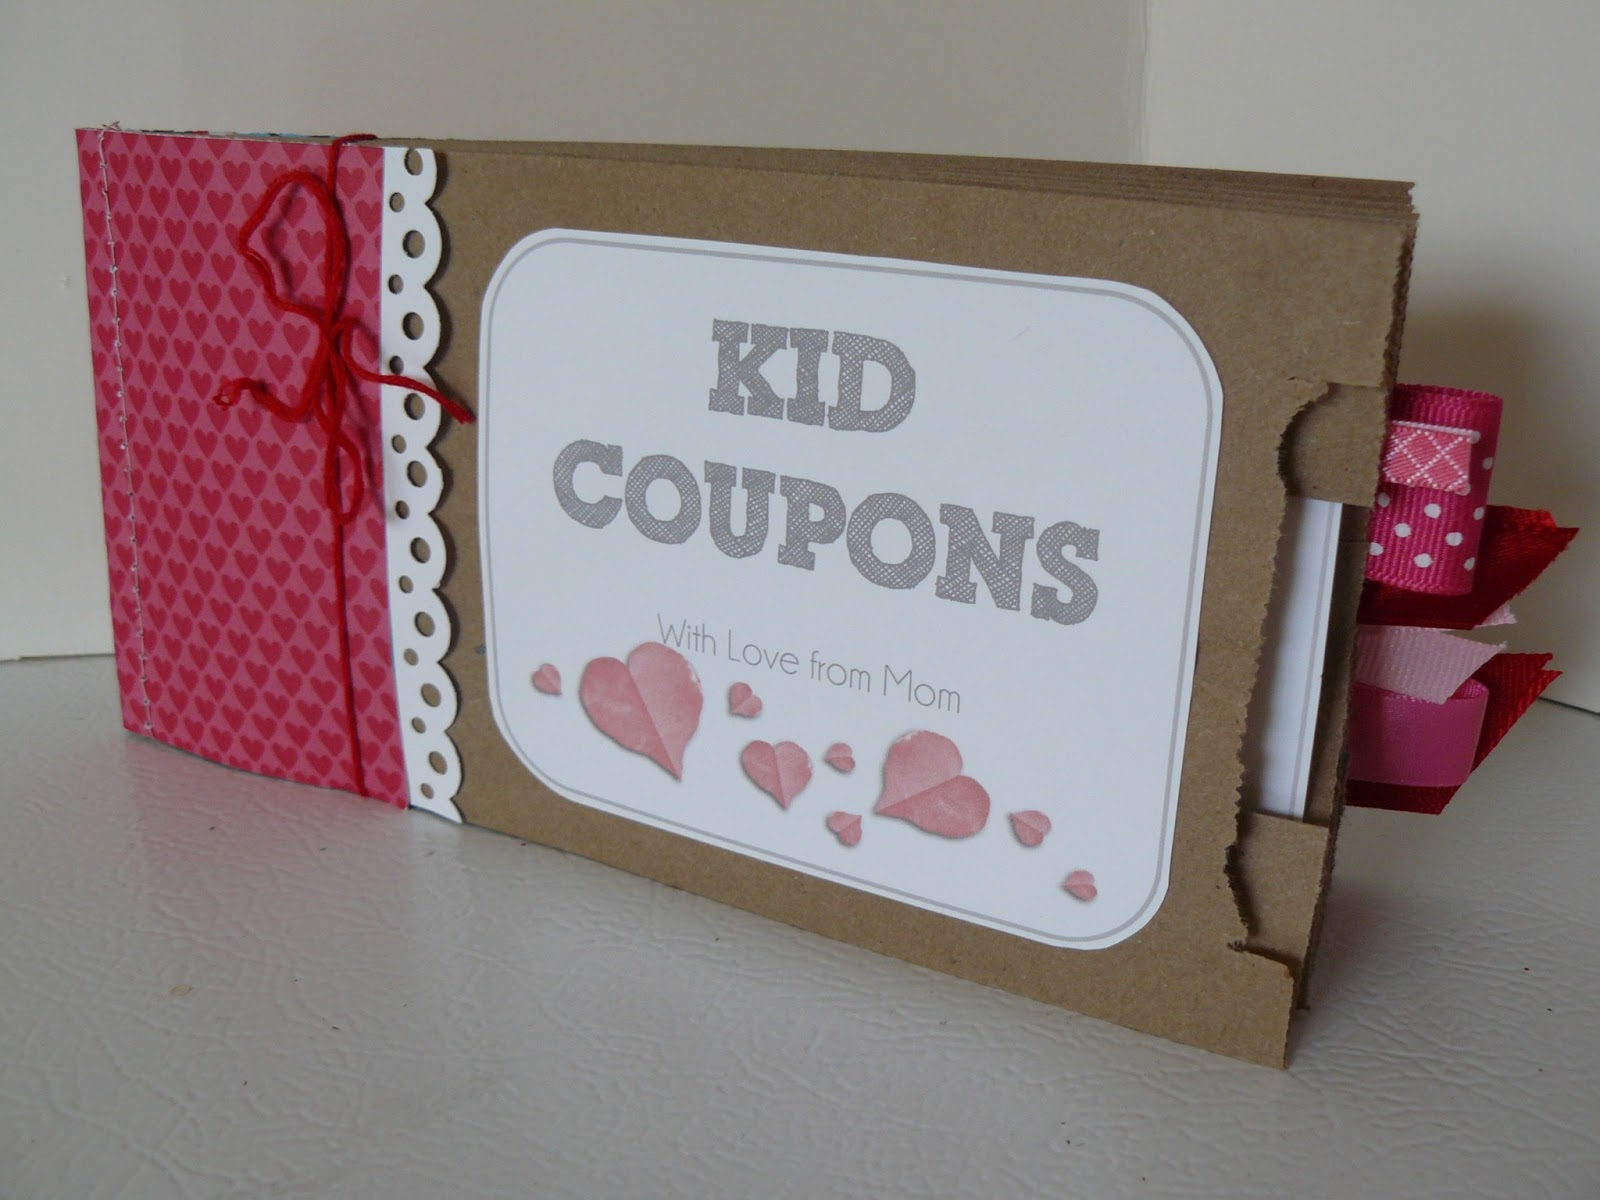 Small fry co valentines coupon books for kids from mom valentines coupon books for kids from mom solutioingenieria Image collections